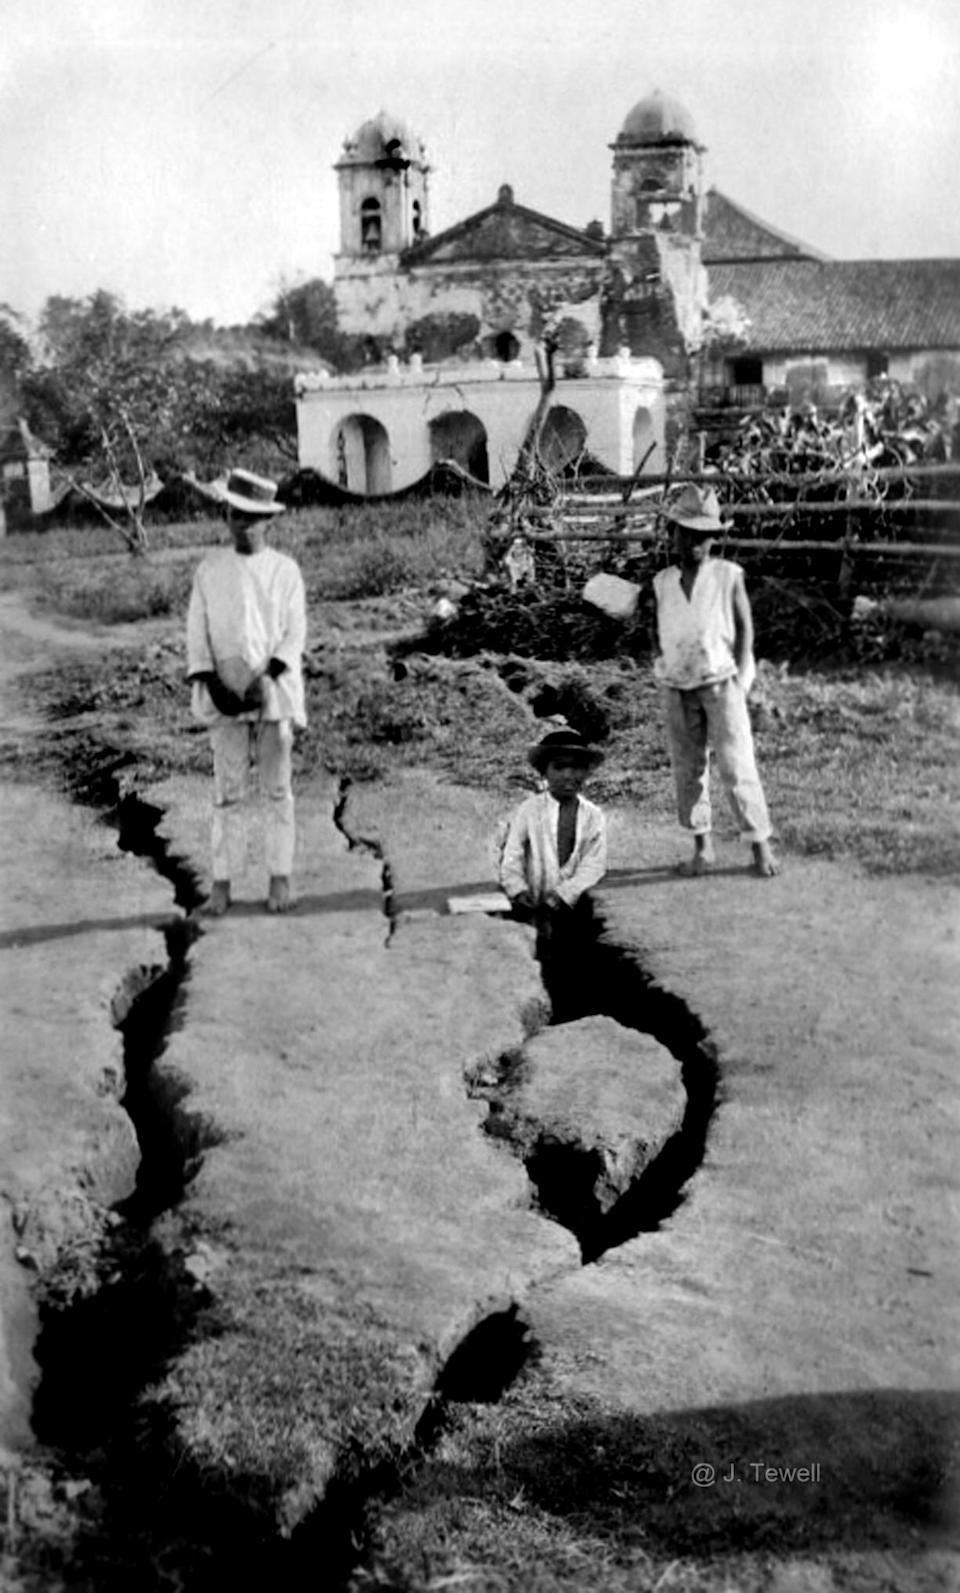 Earthquakes and tremors of increasing strength were recorded prior to Taal's eruption in 1911